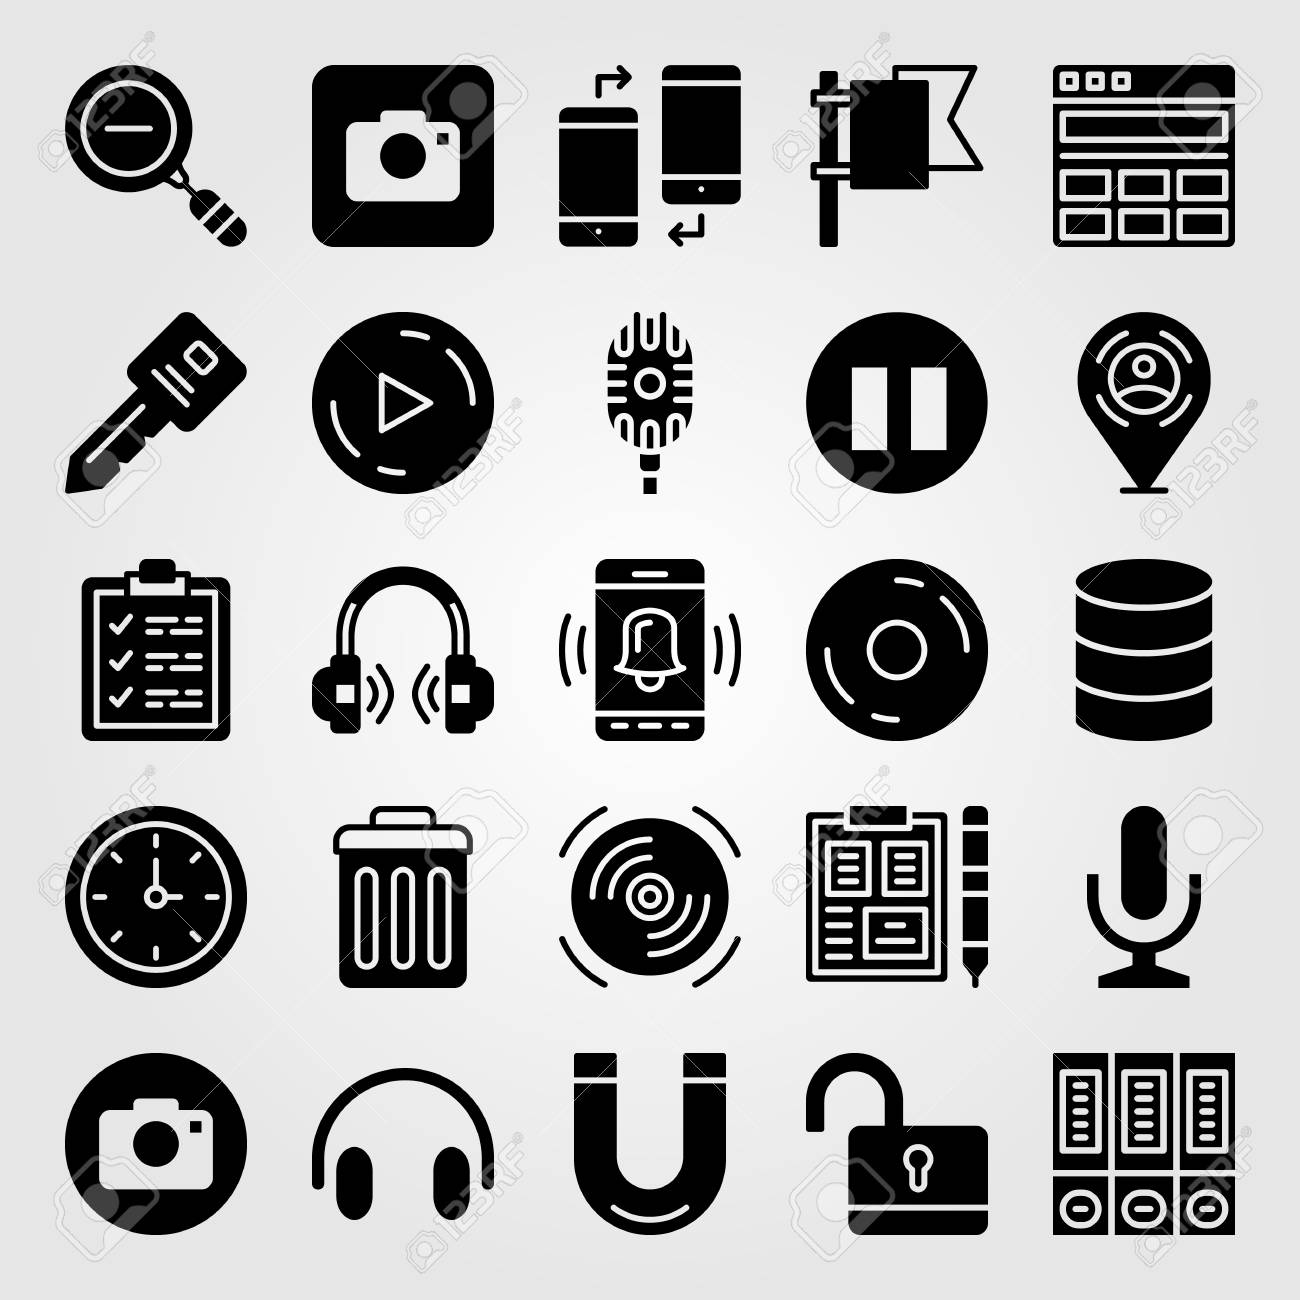 Essentials icon set vector  Placeholder, play button, zoom out